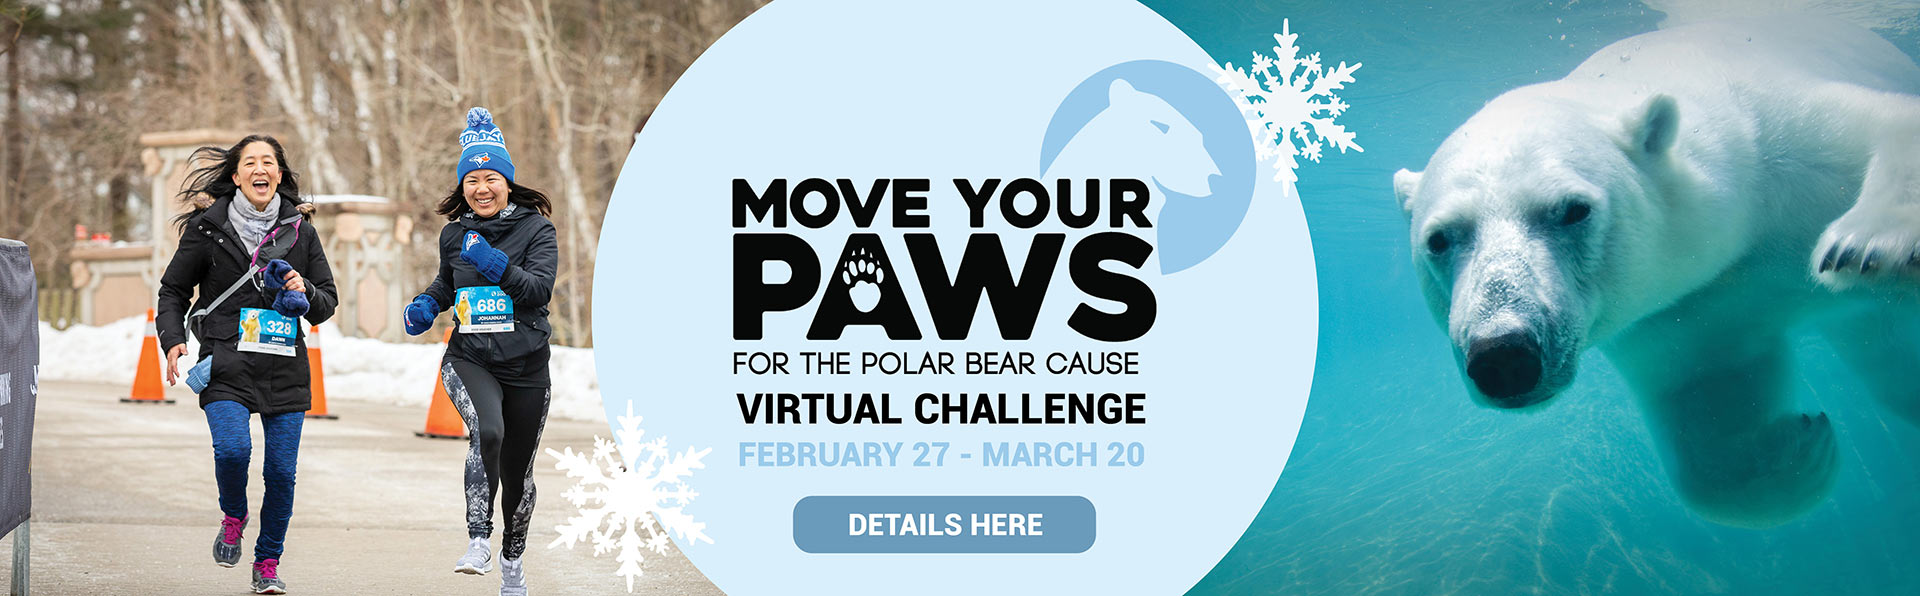 Move you paws for the polar bear cause virtual challenge